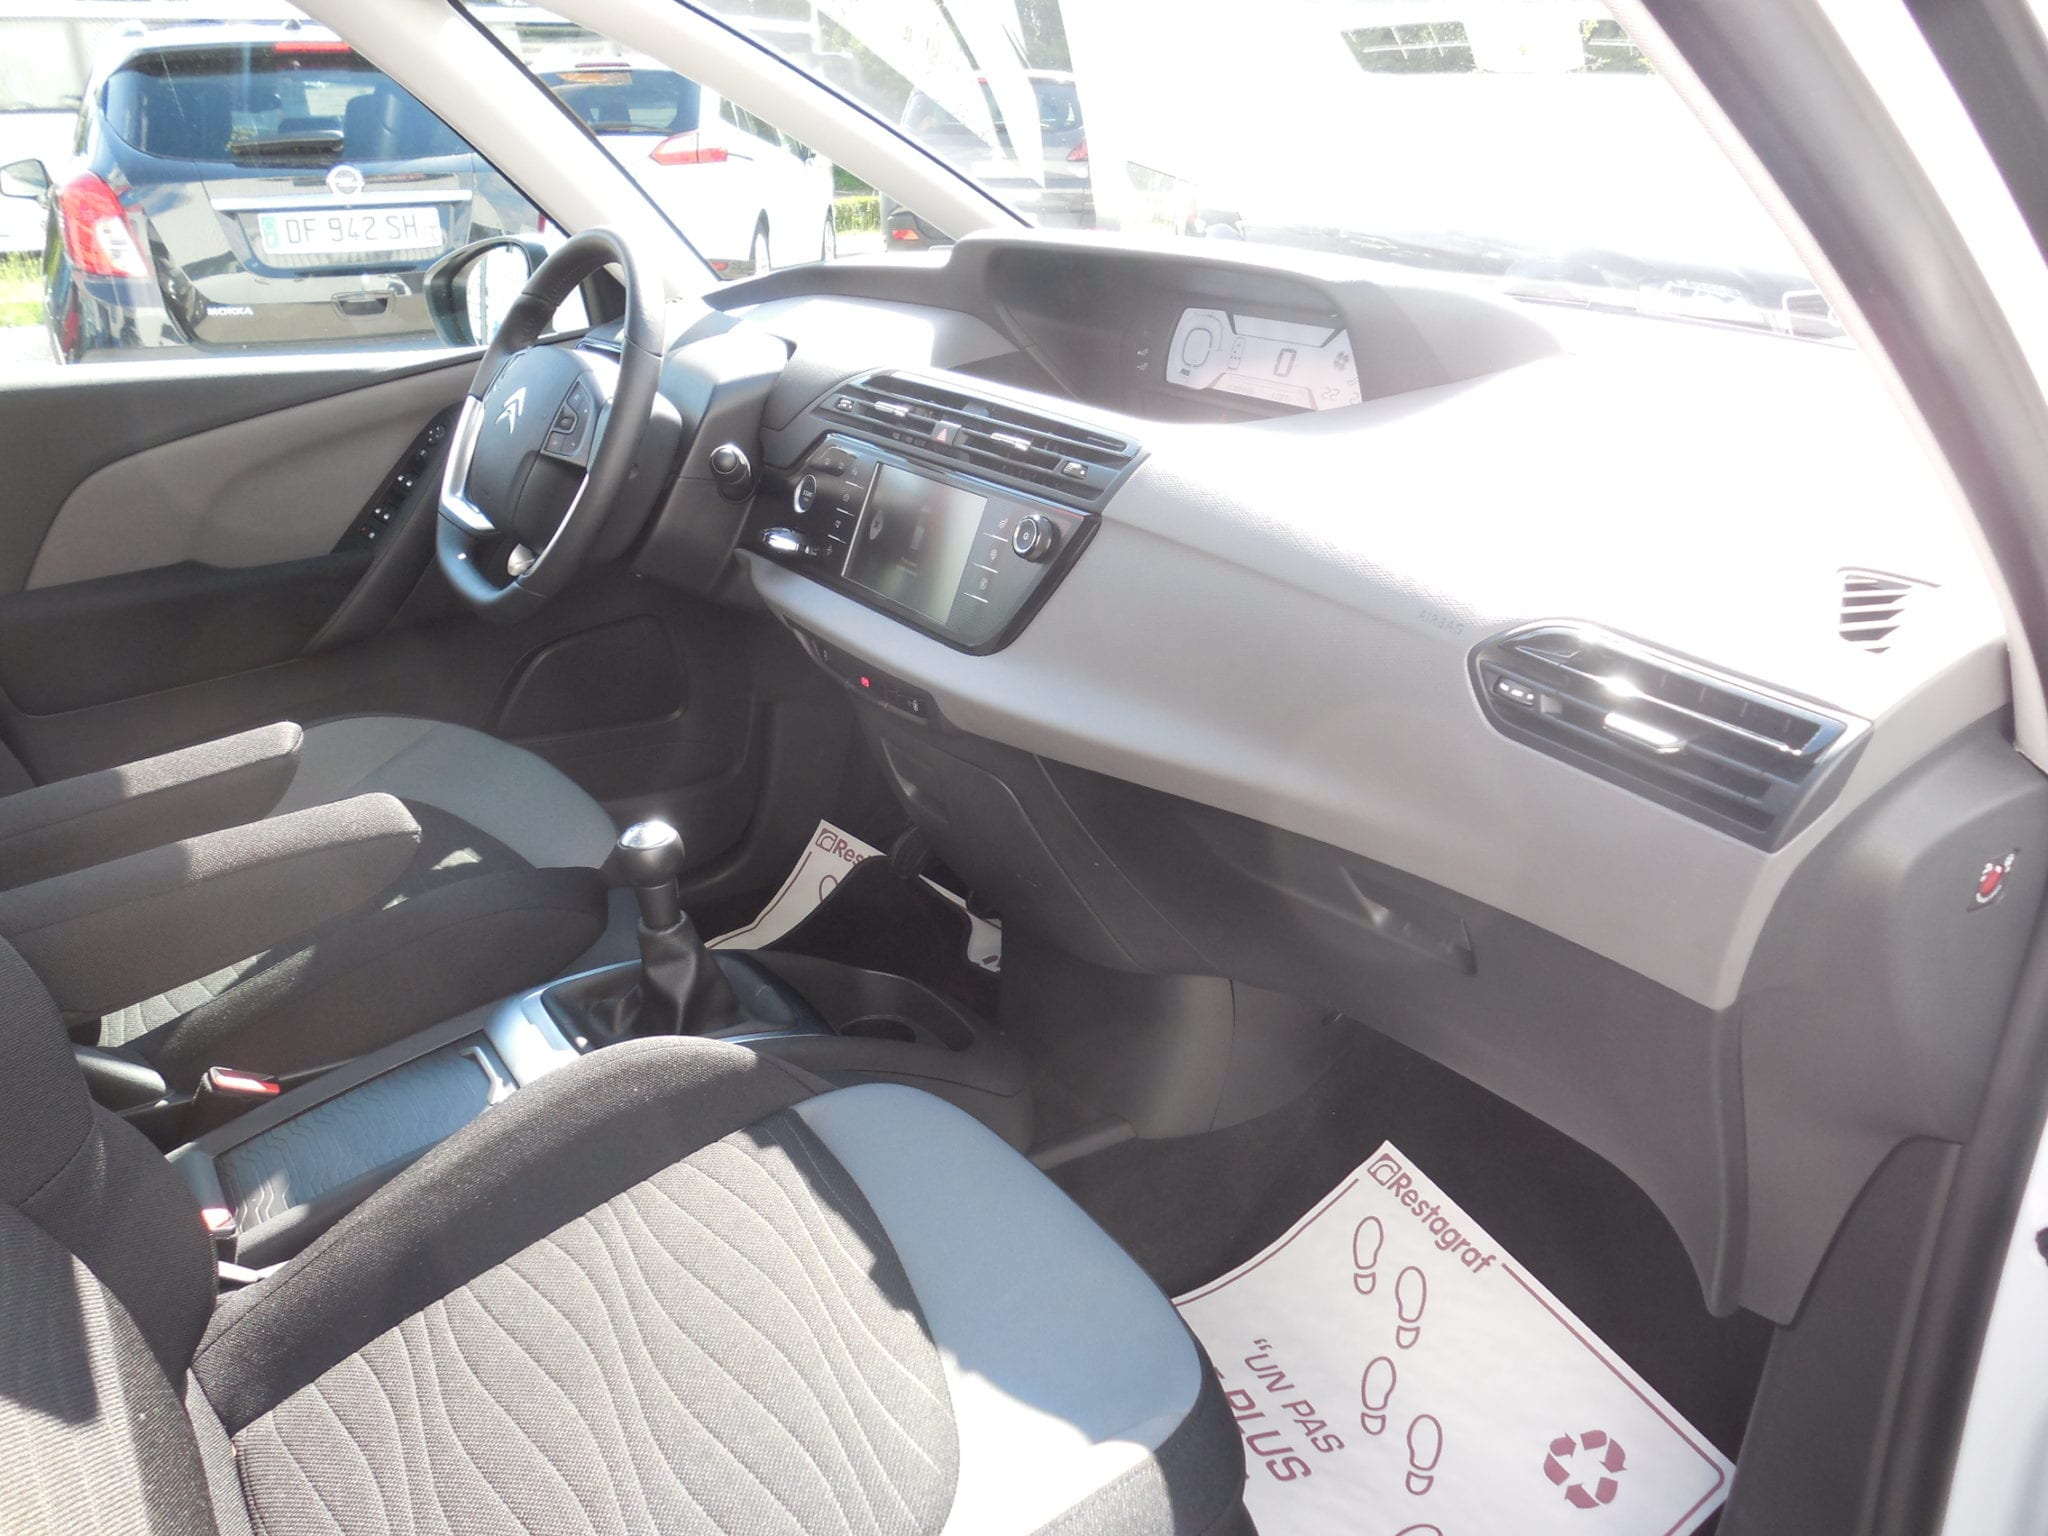 Audi C4 Picasso COLLECTION eHDI+OPTIONS 30446 KMS  - Image 3